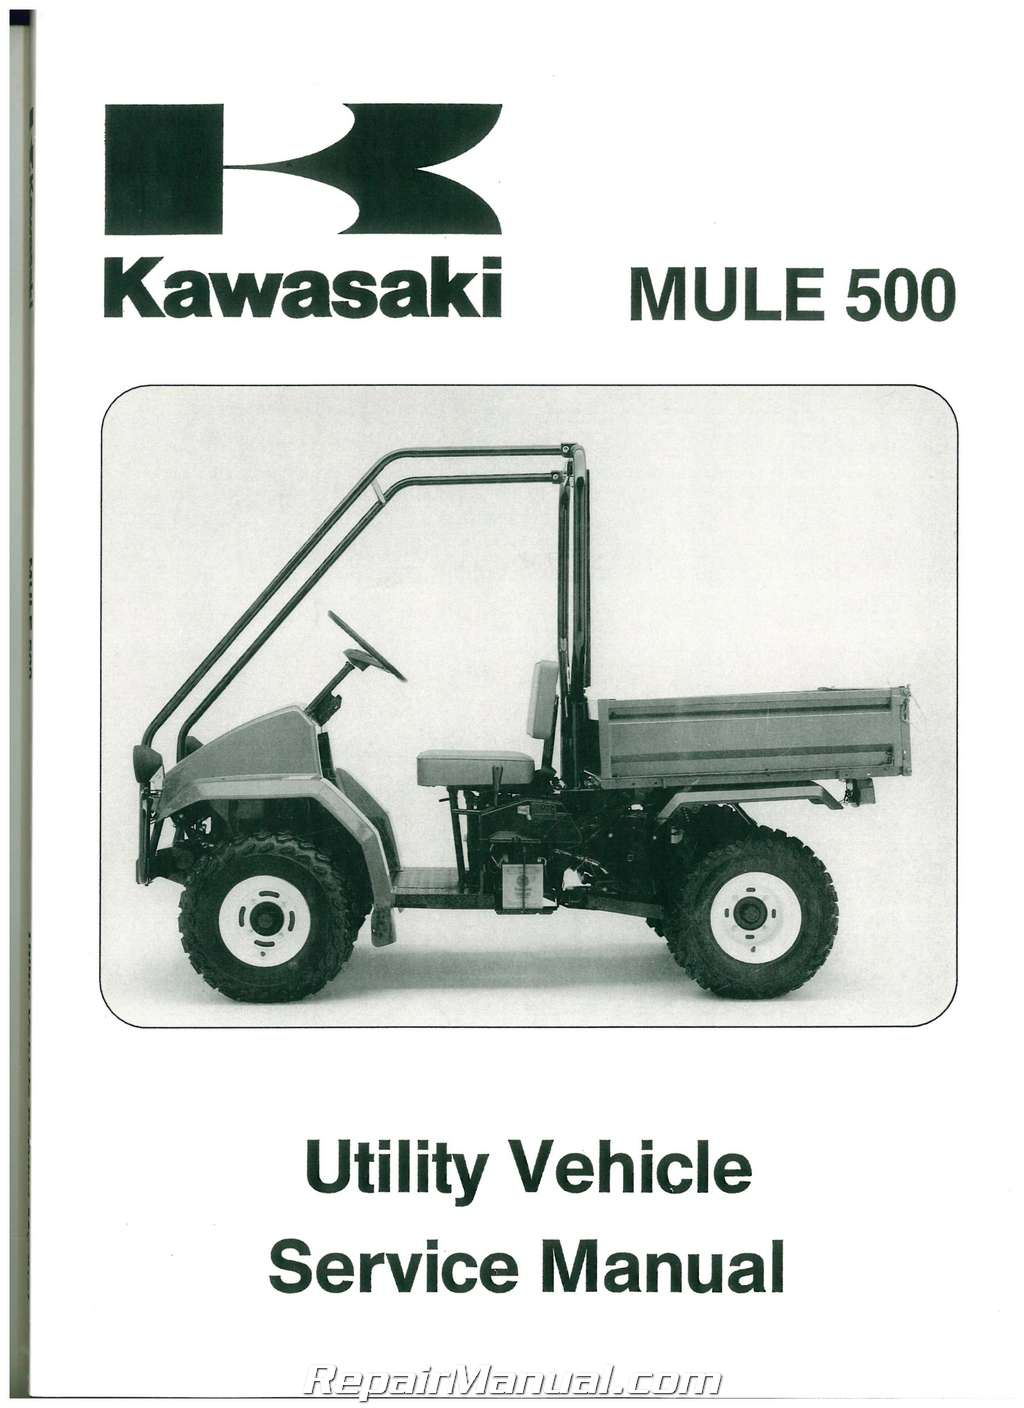 1990 2004 kawasaki kaf300a mule 500 520 550 utv service manual rh repairmanual com kawasaki mule 550 repair manual kawasaki mule 550 manual download